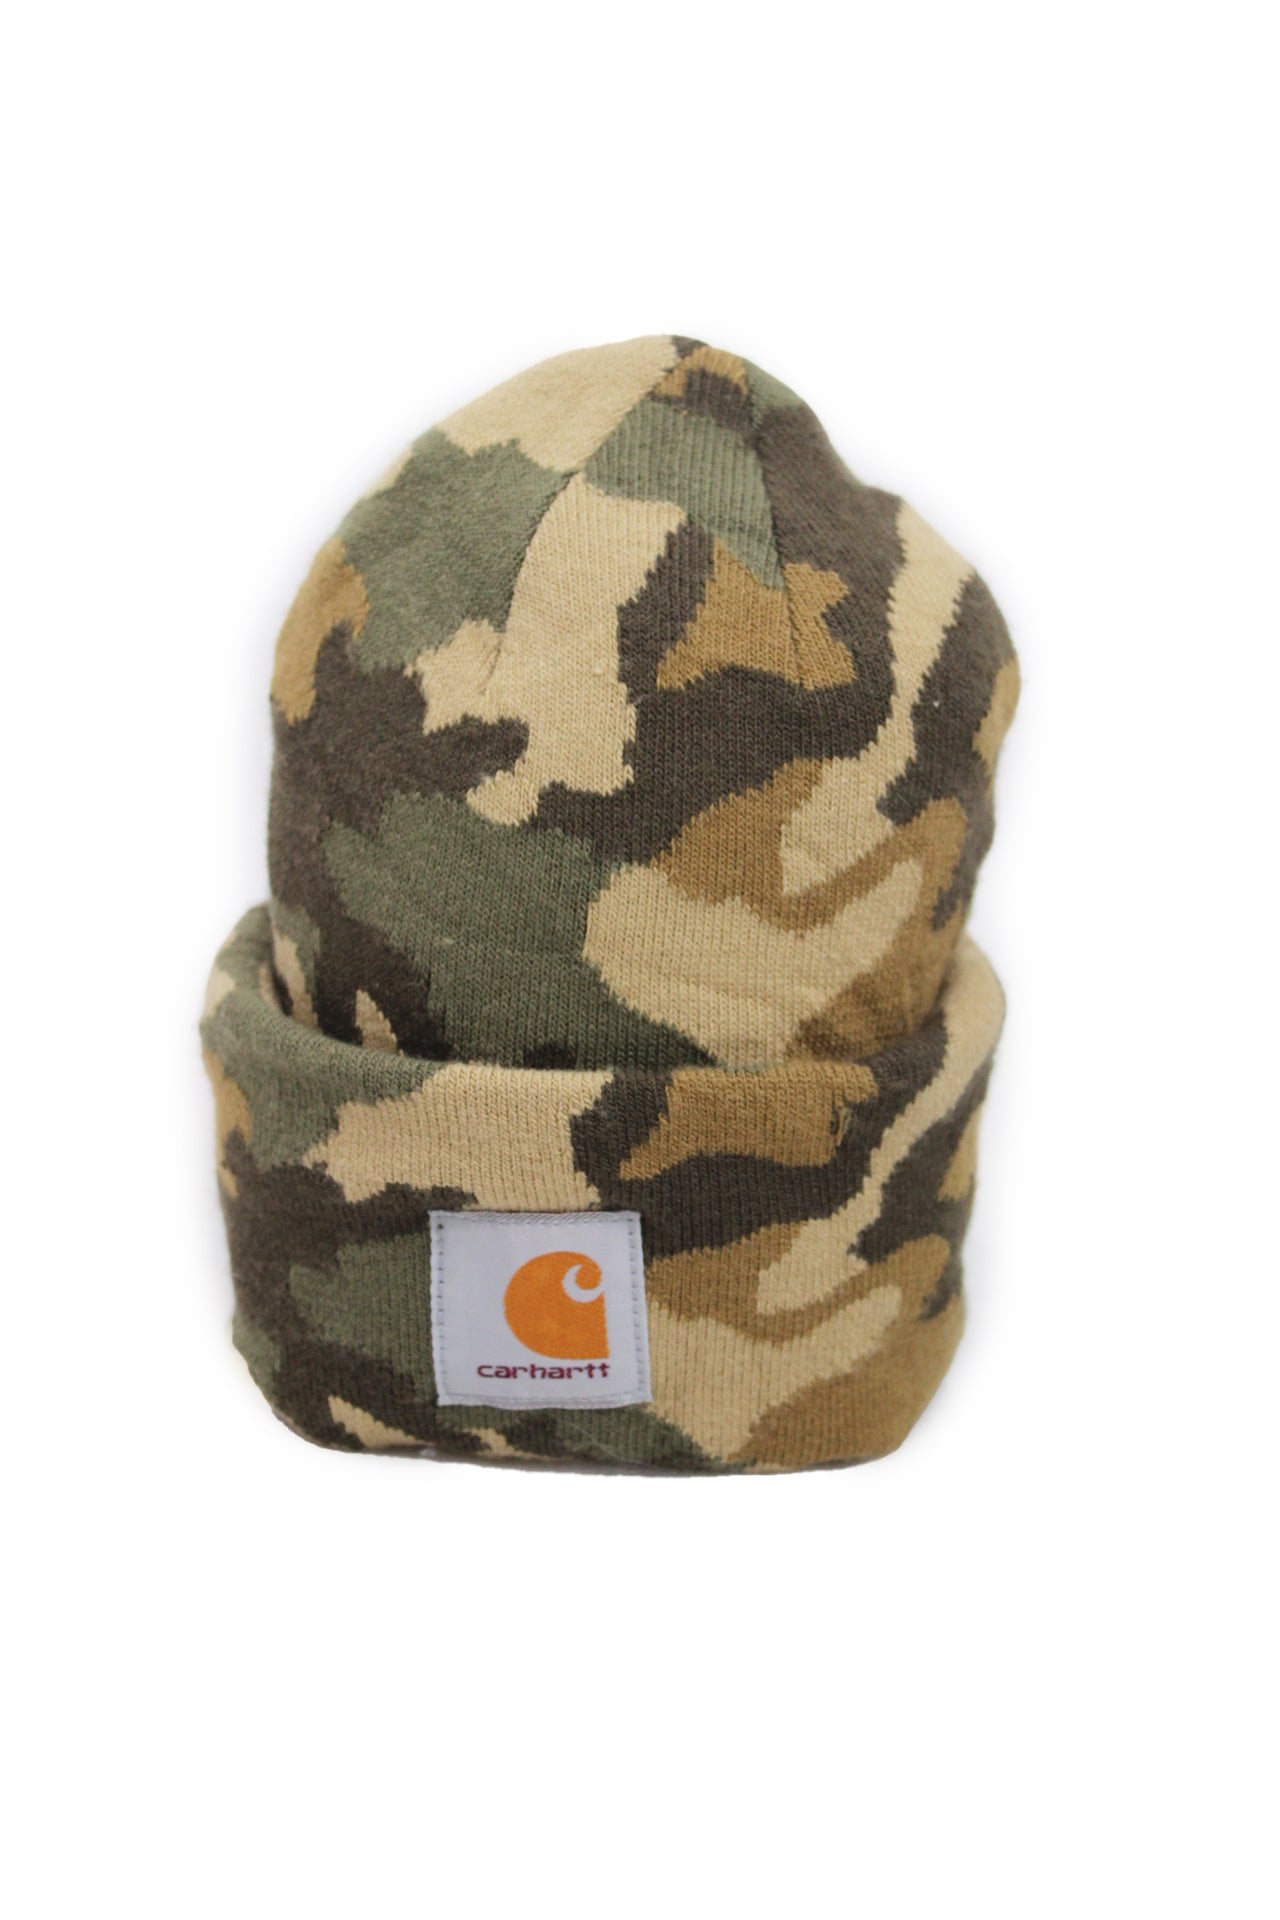 description: carhartt camouflage beanie. featuring logo patch.